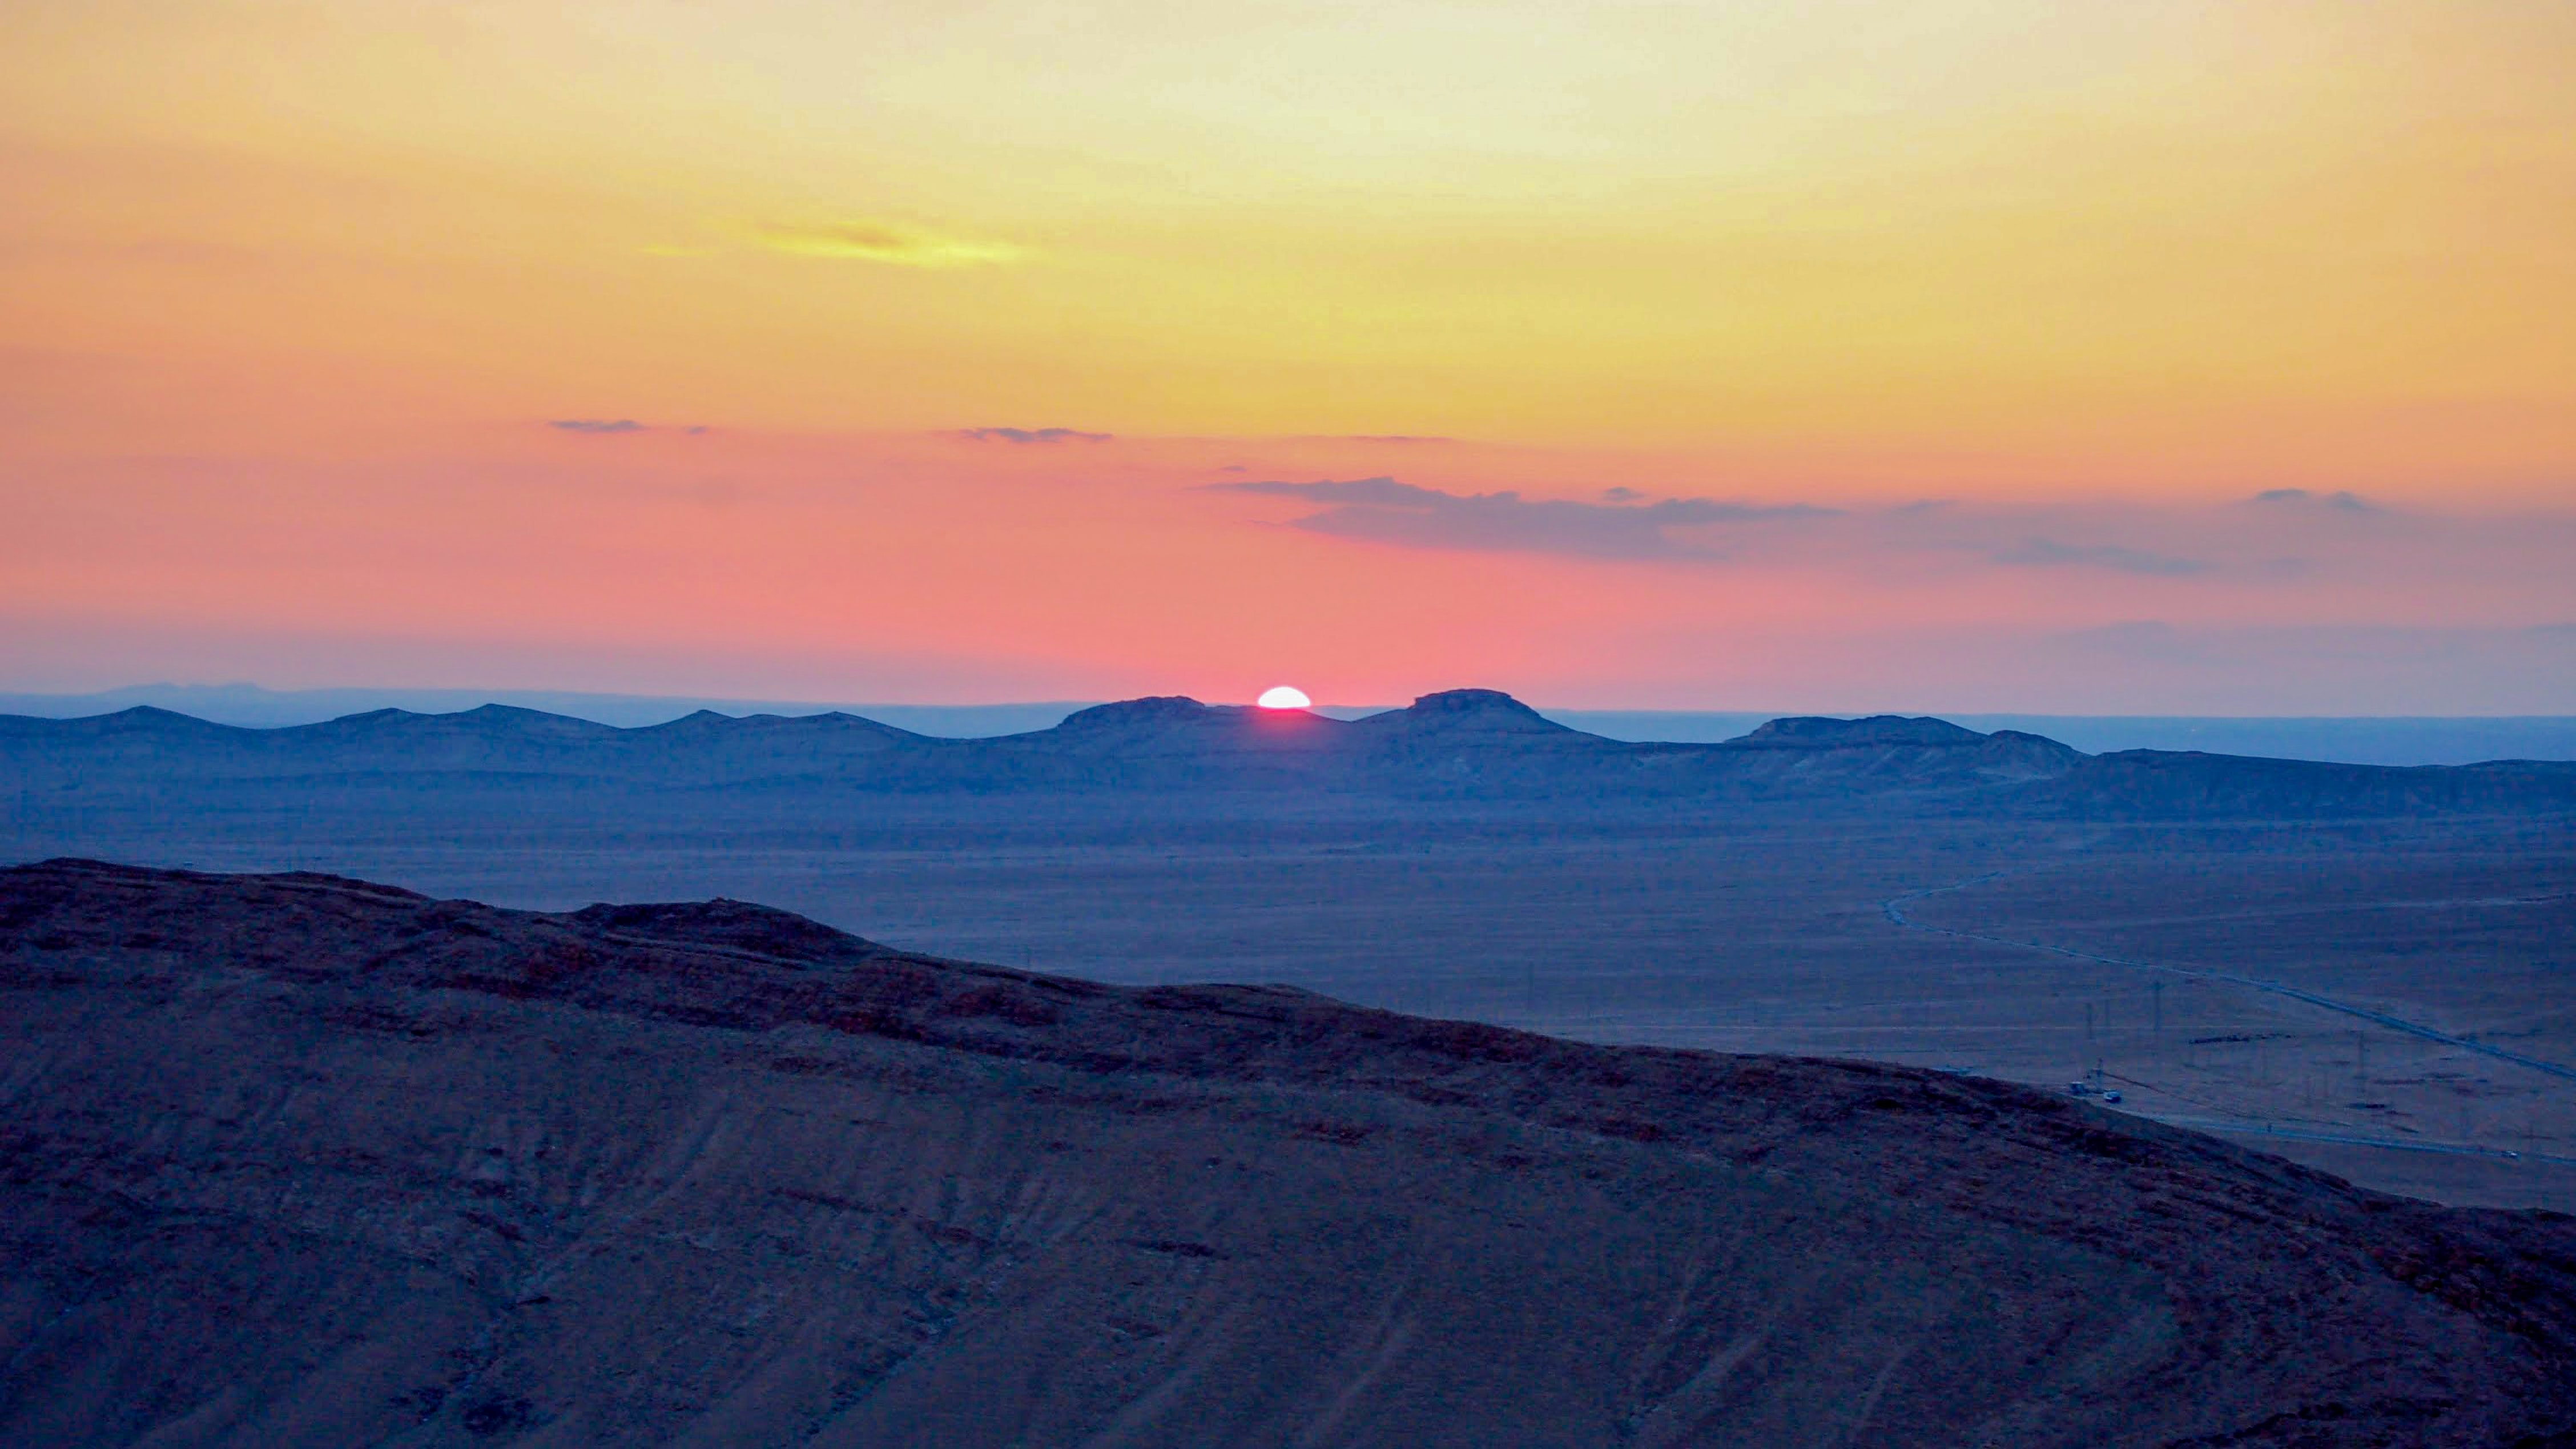 landscape photograph of mountain ranges during golden hour